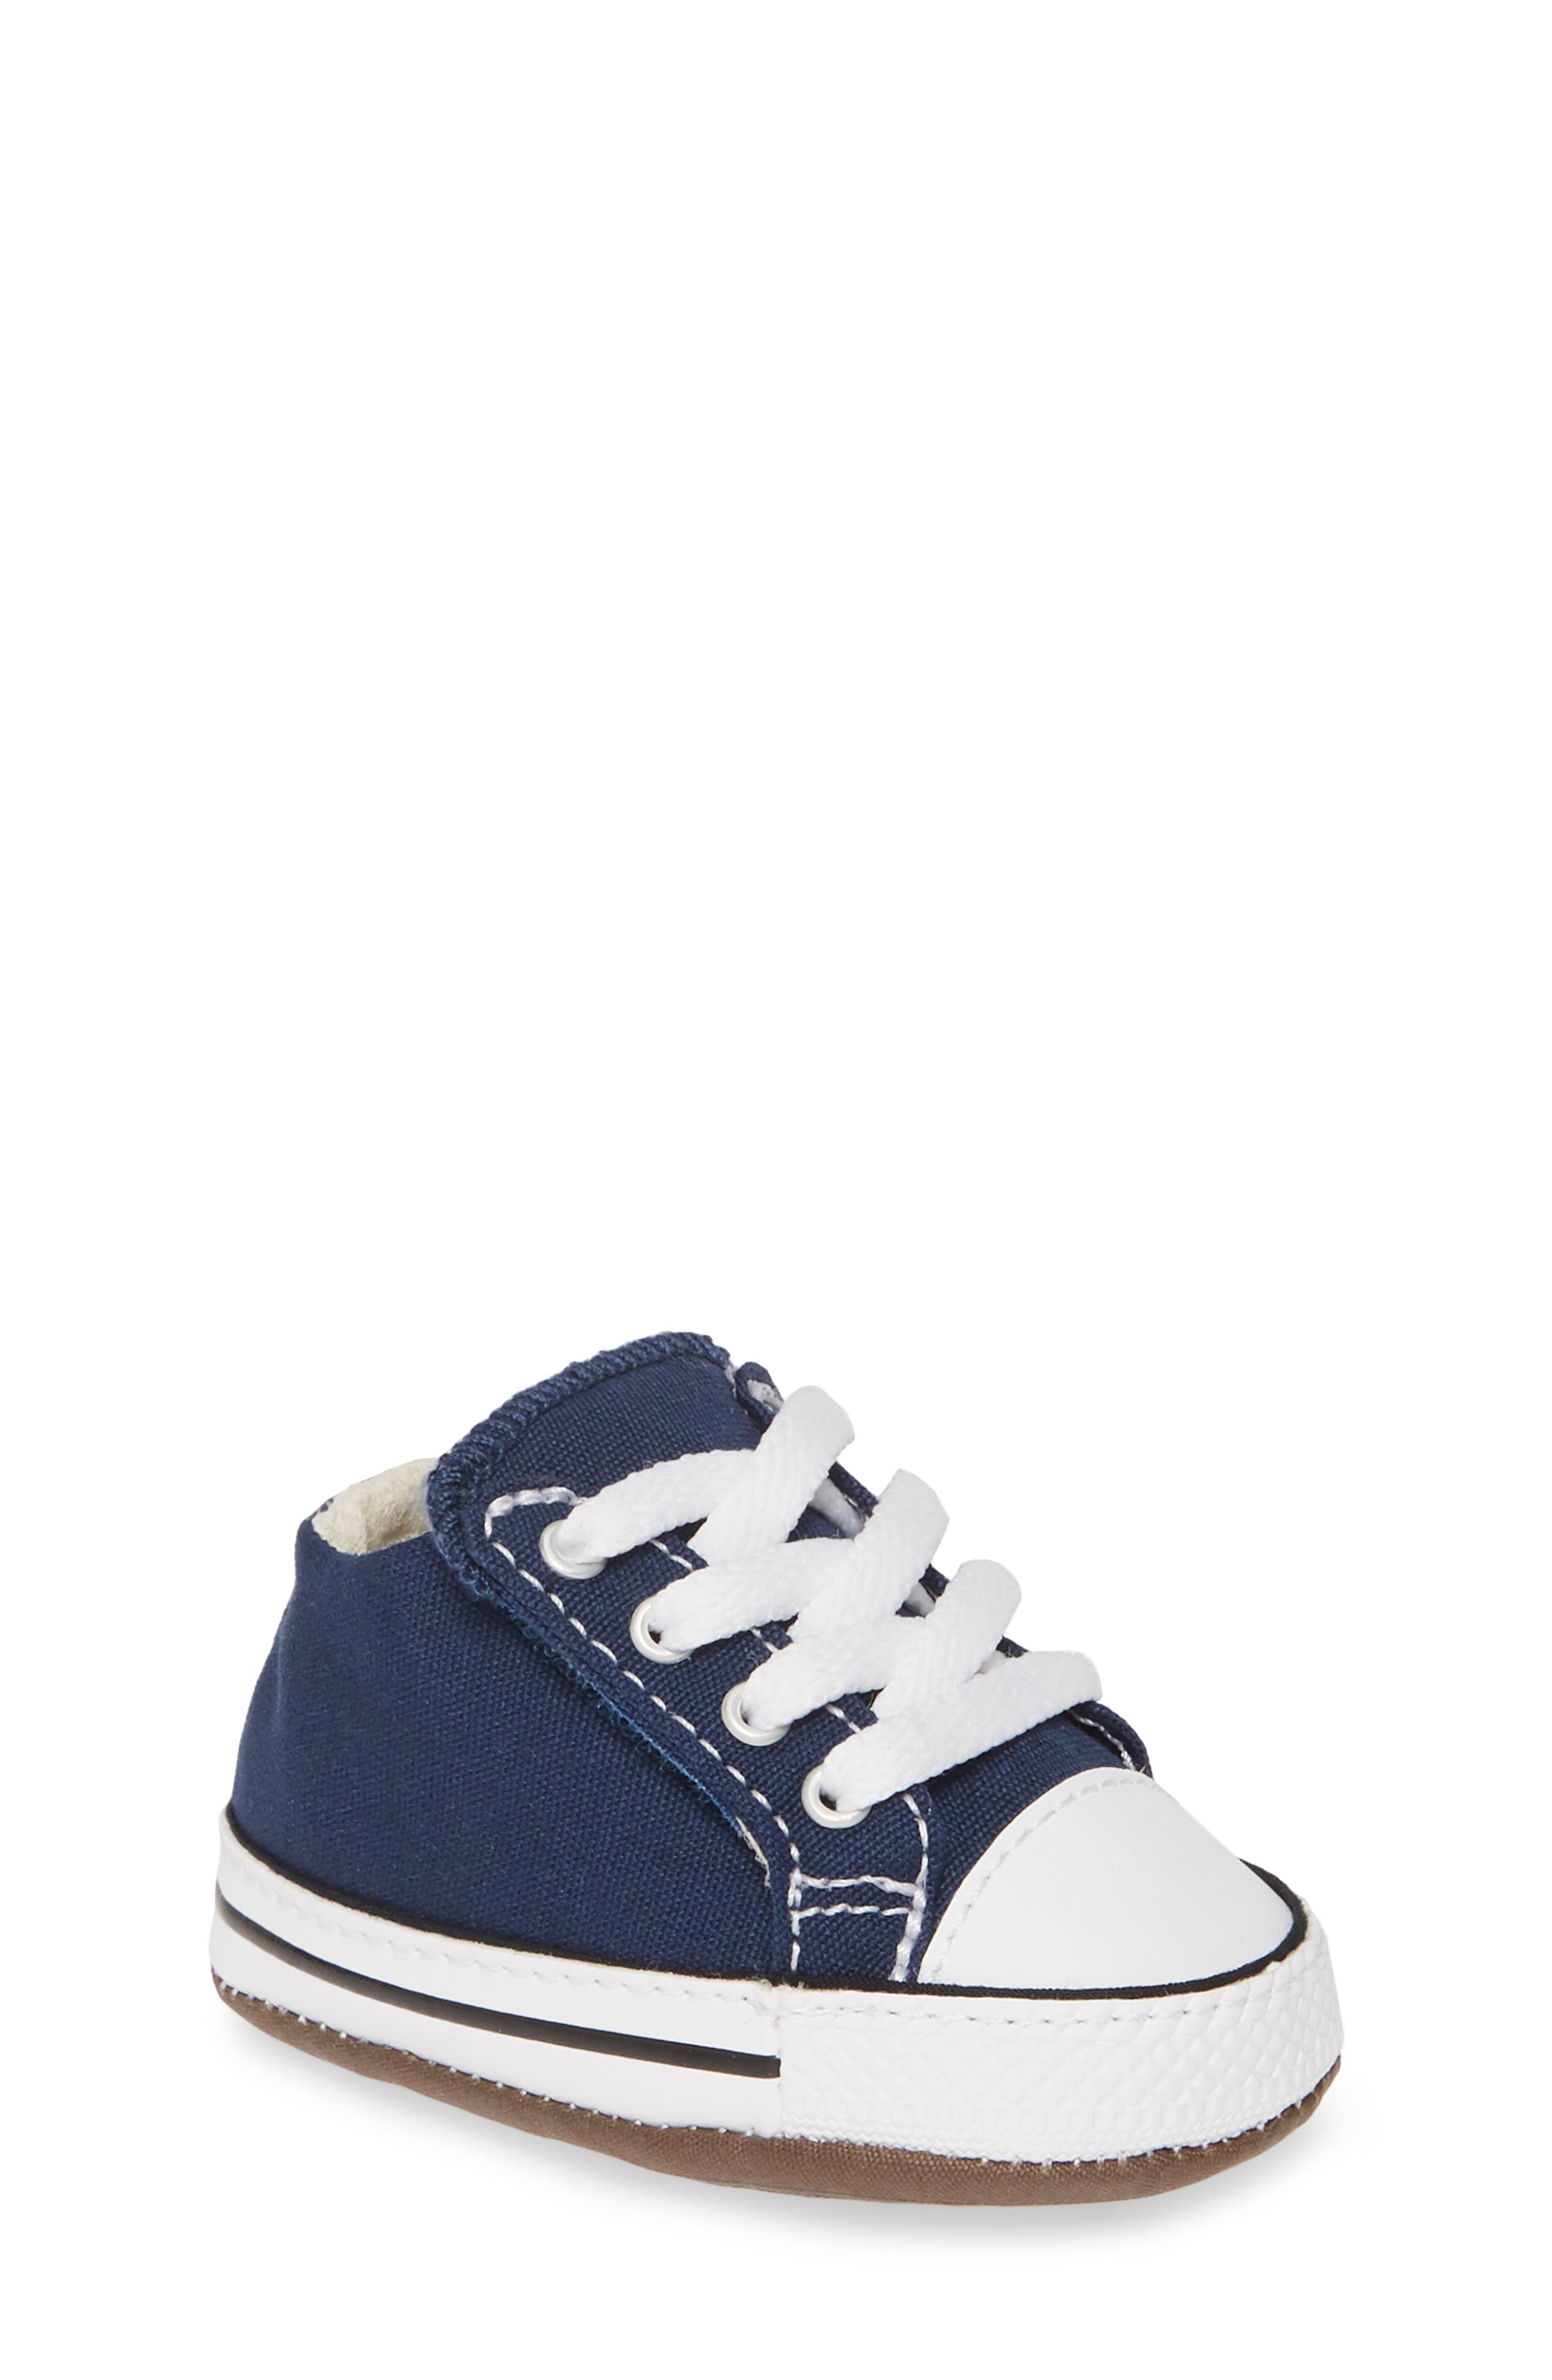 Converse All Star New American US Flagge Sea Star Ox Low Top